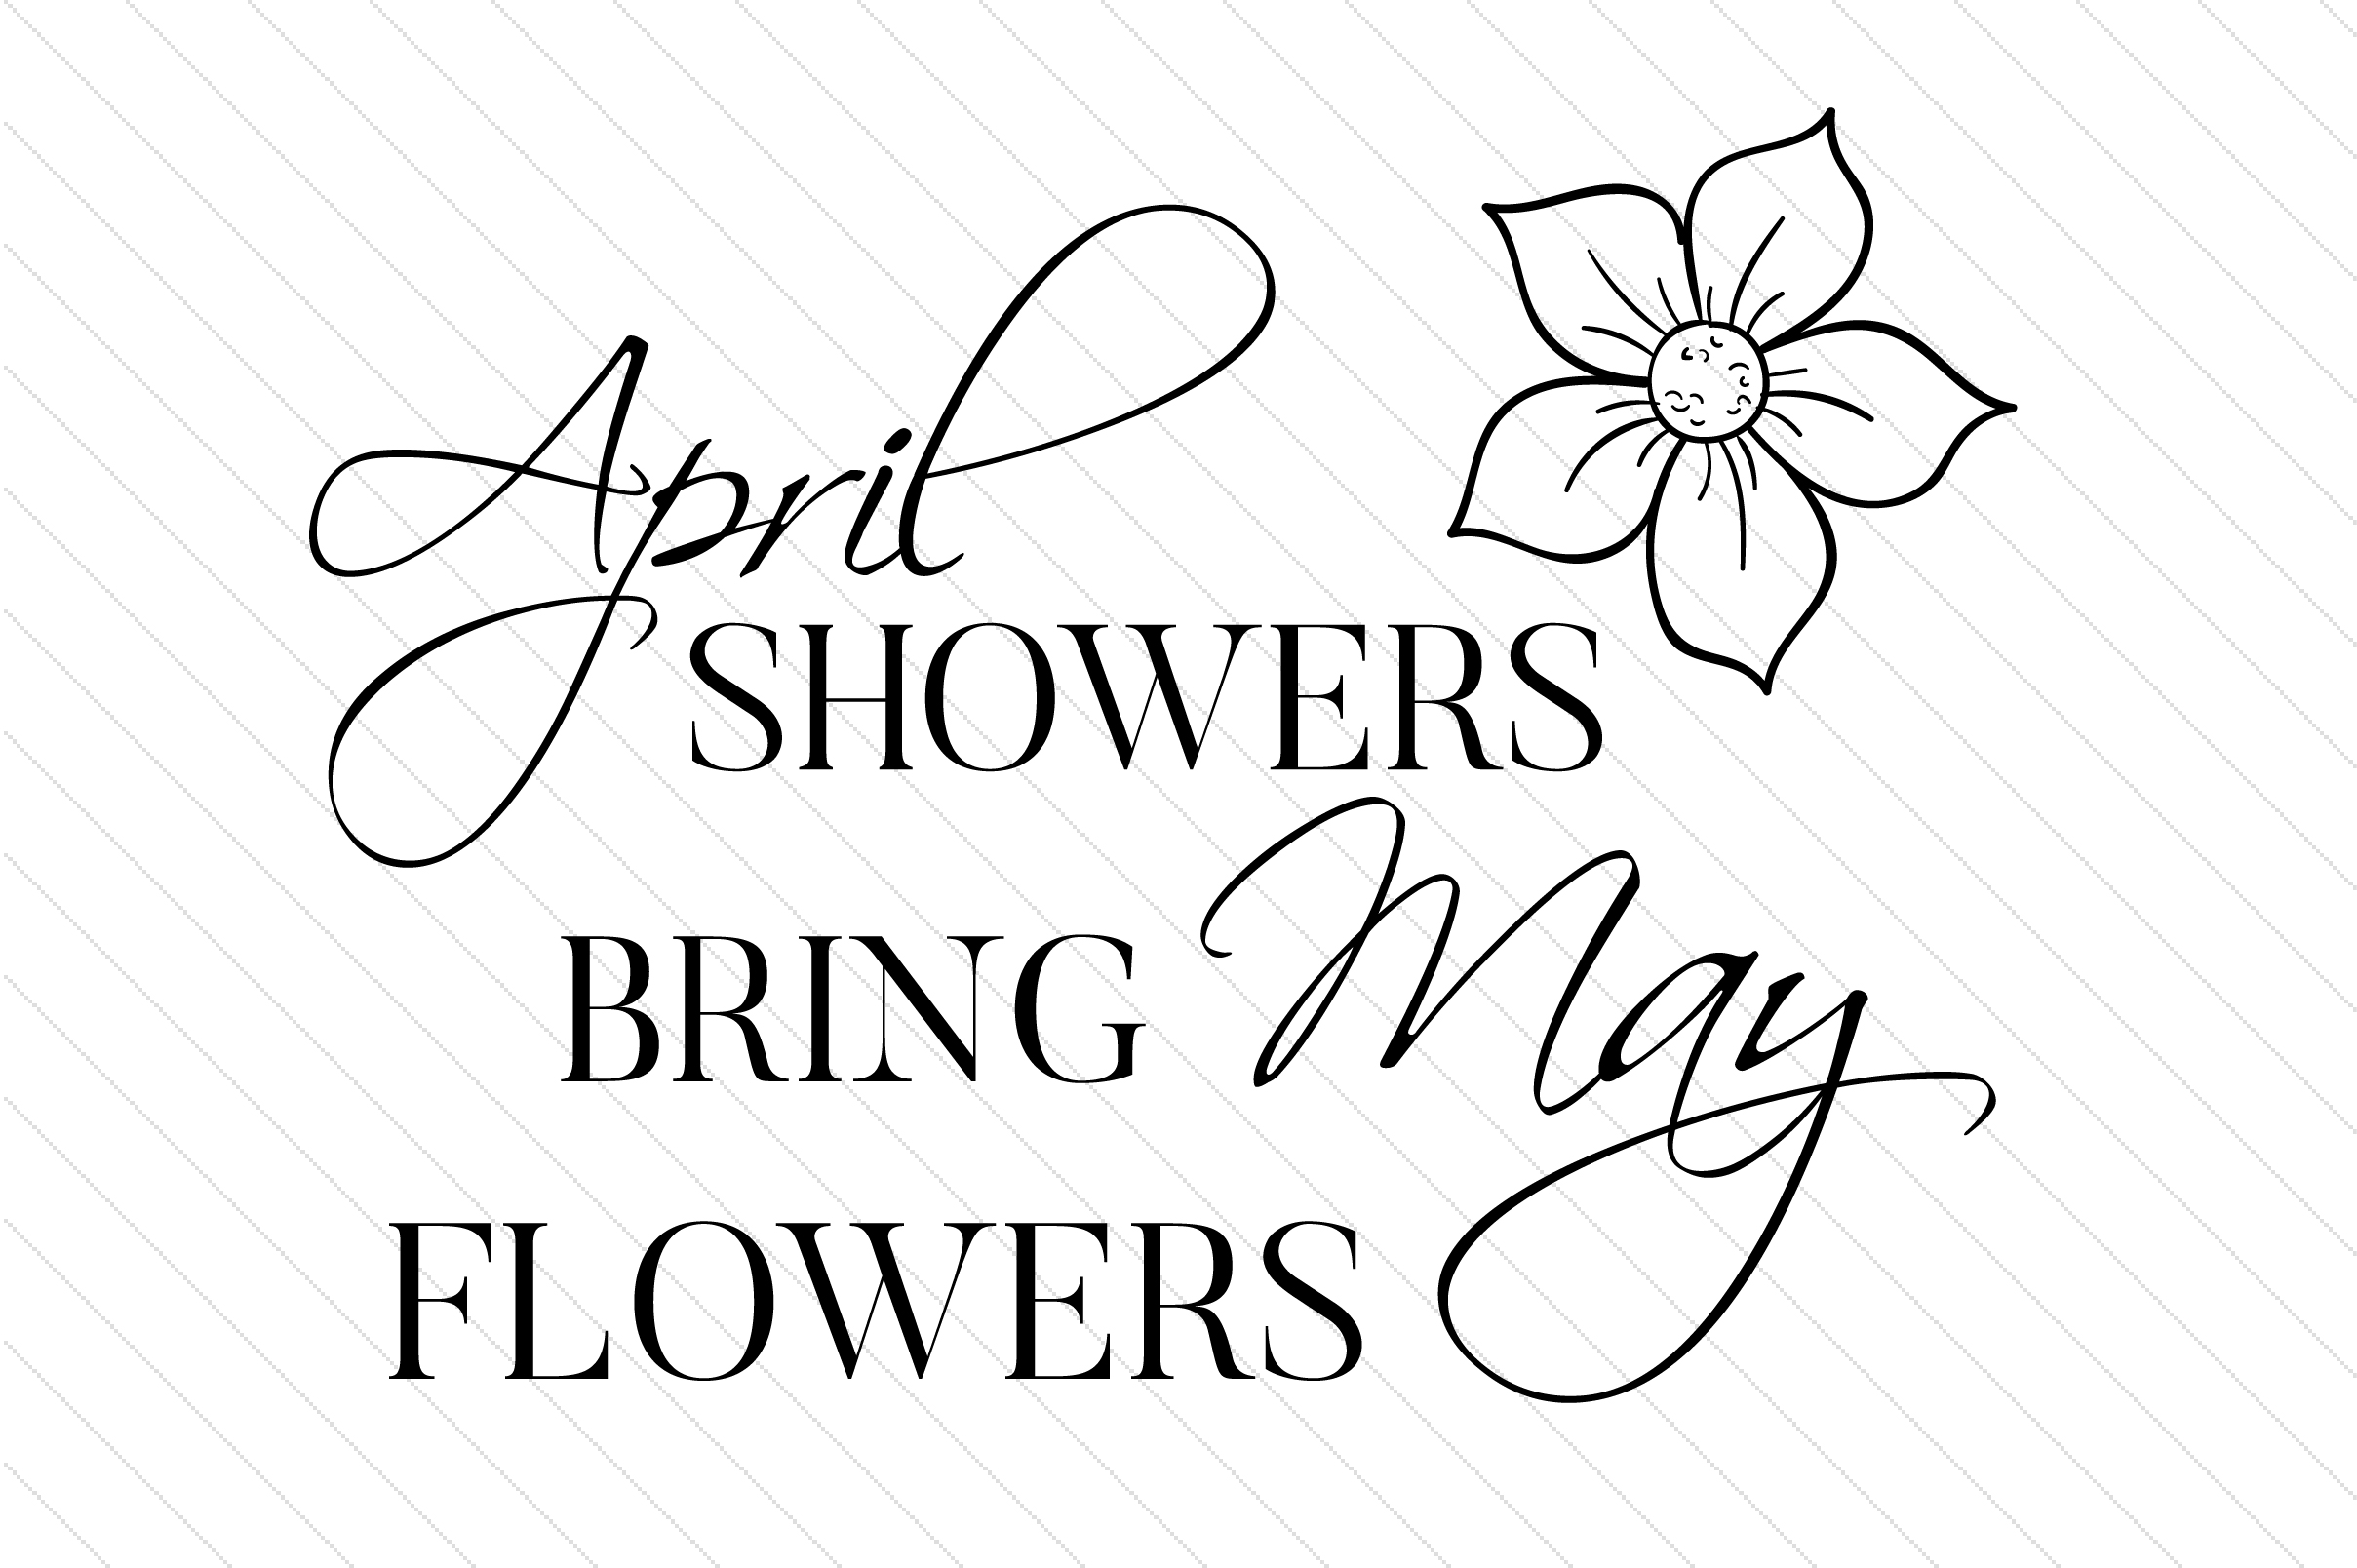 April Showers Bring May Flowers Spring Craft Cut File By Creative Fabrica Crafts